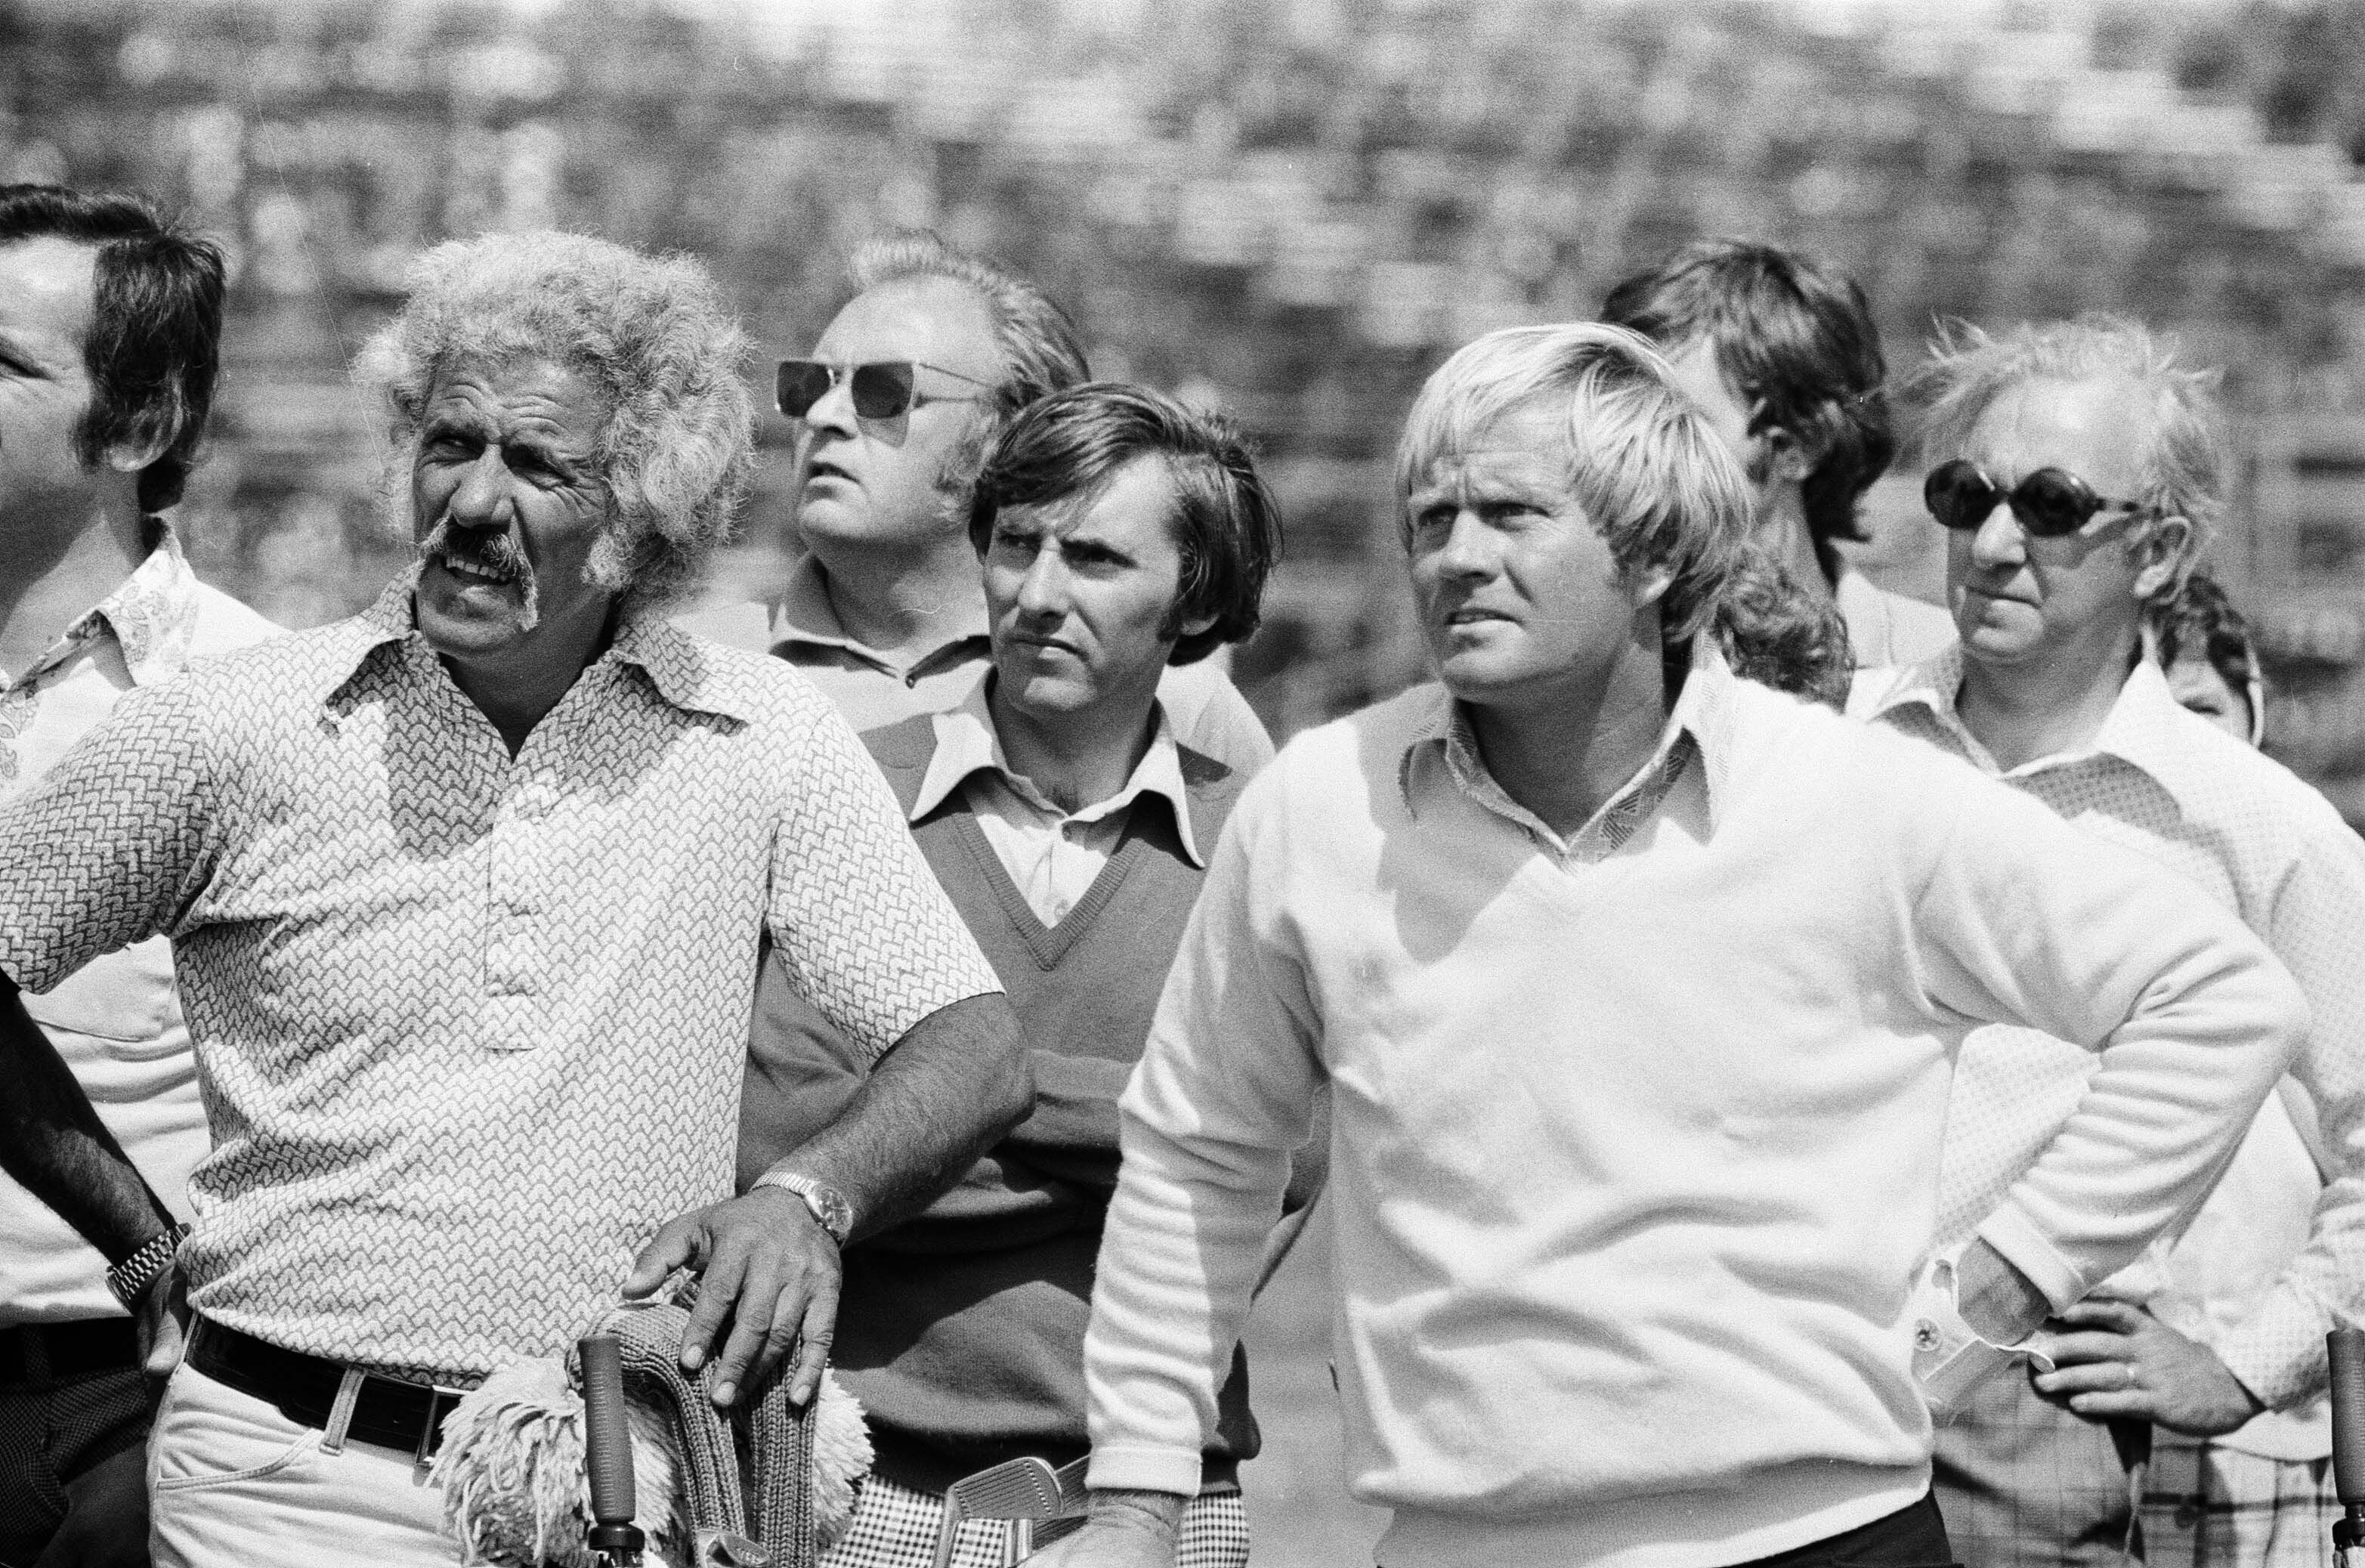 Jack Nicklaus and Angelo Argea